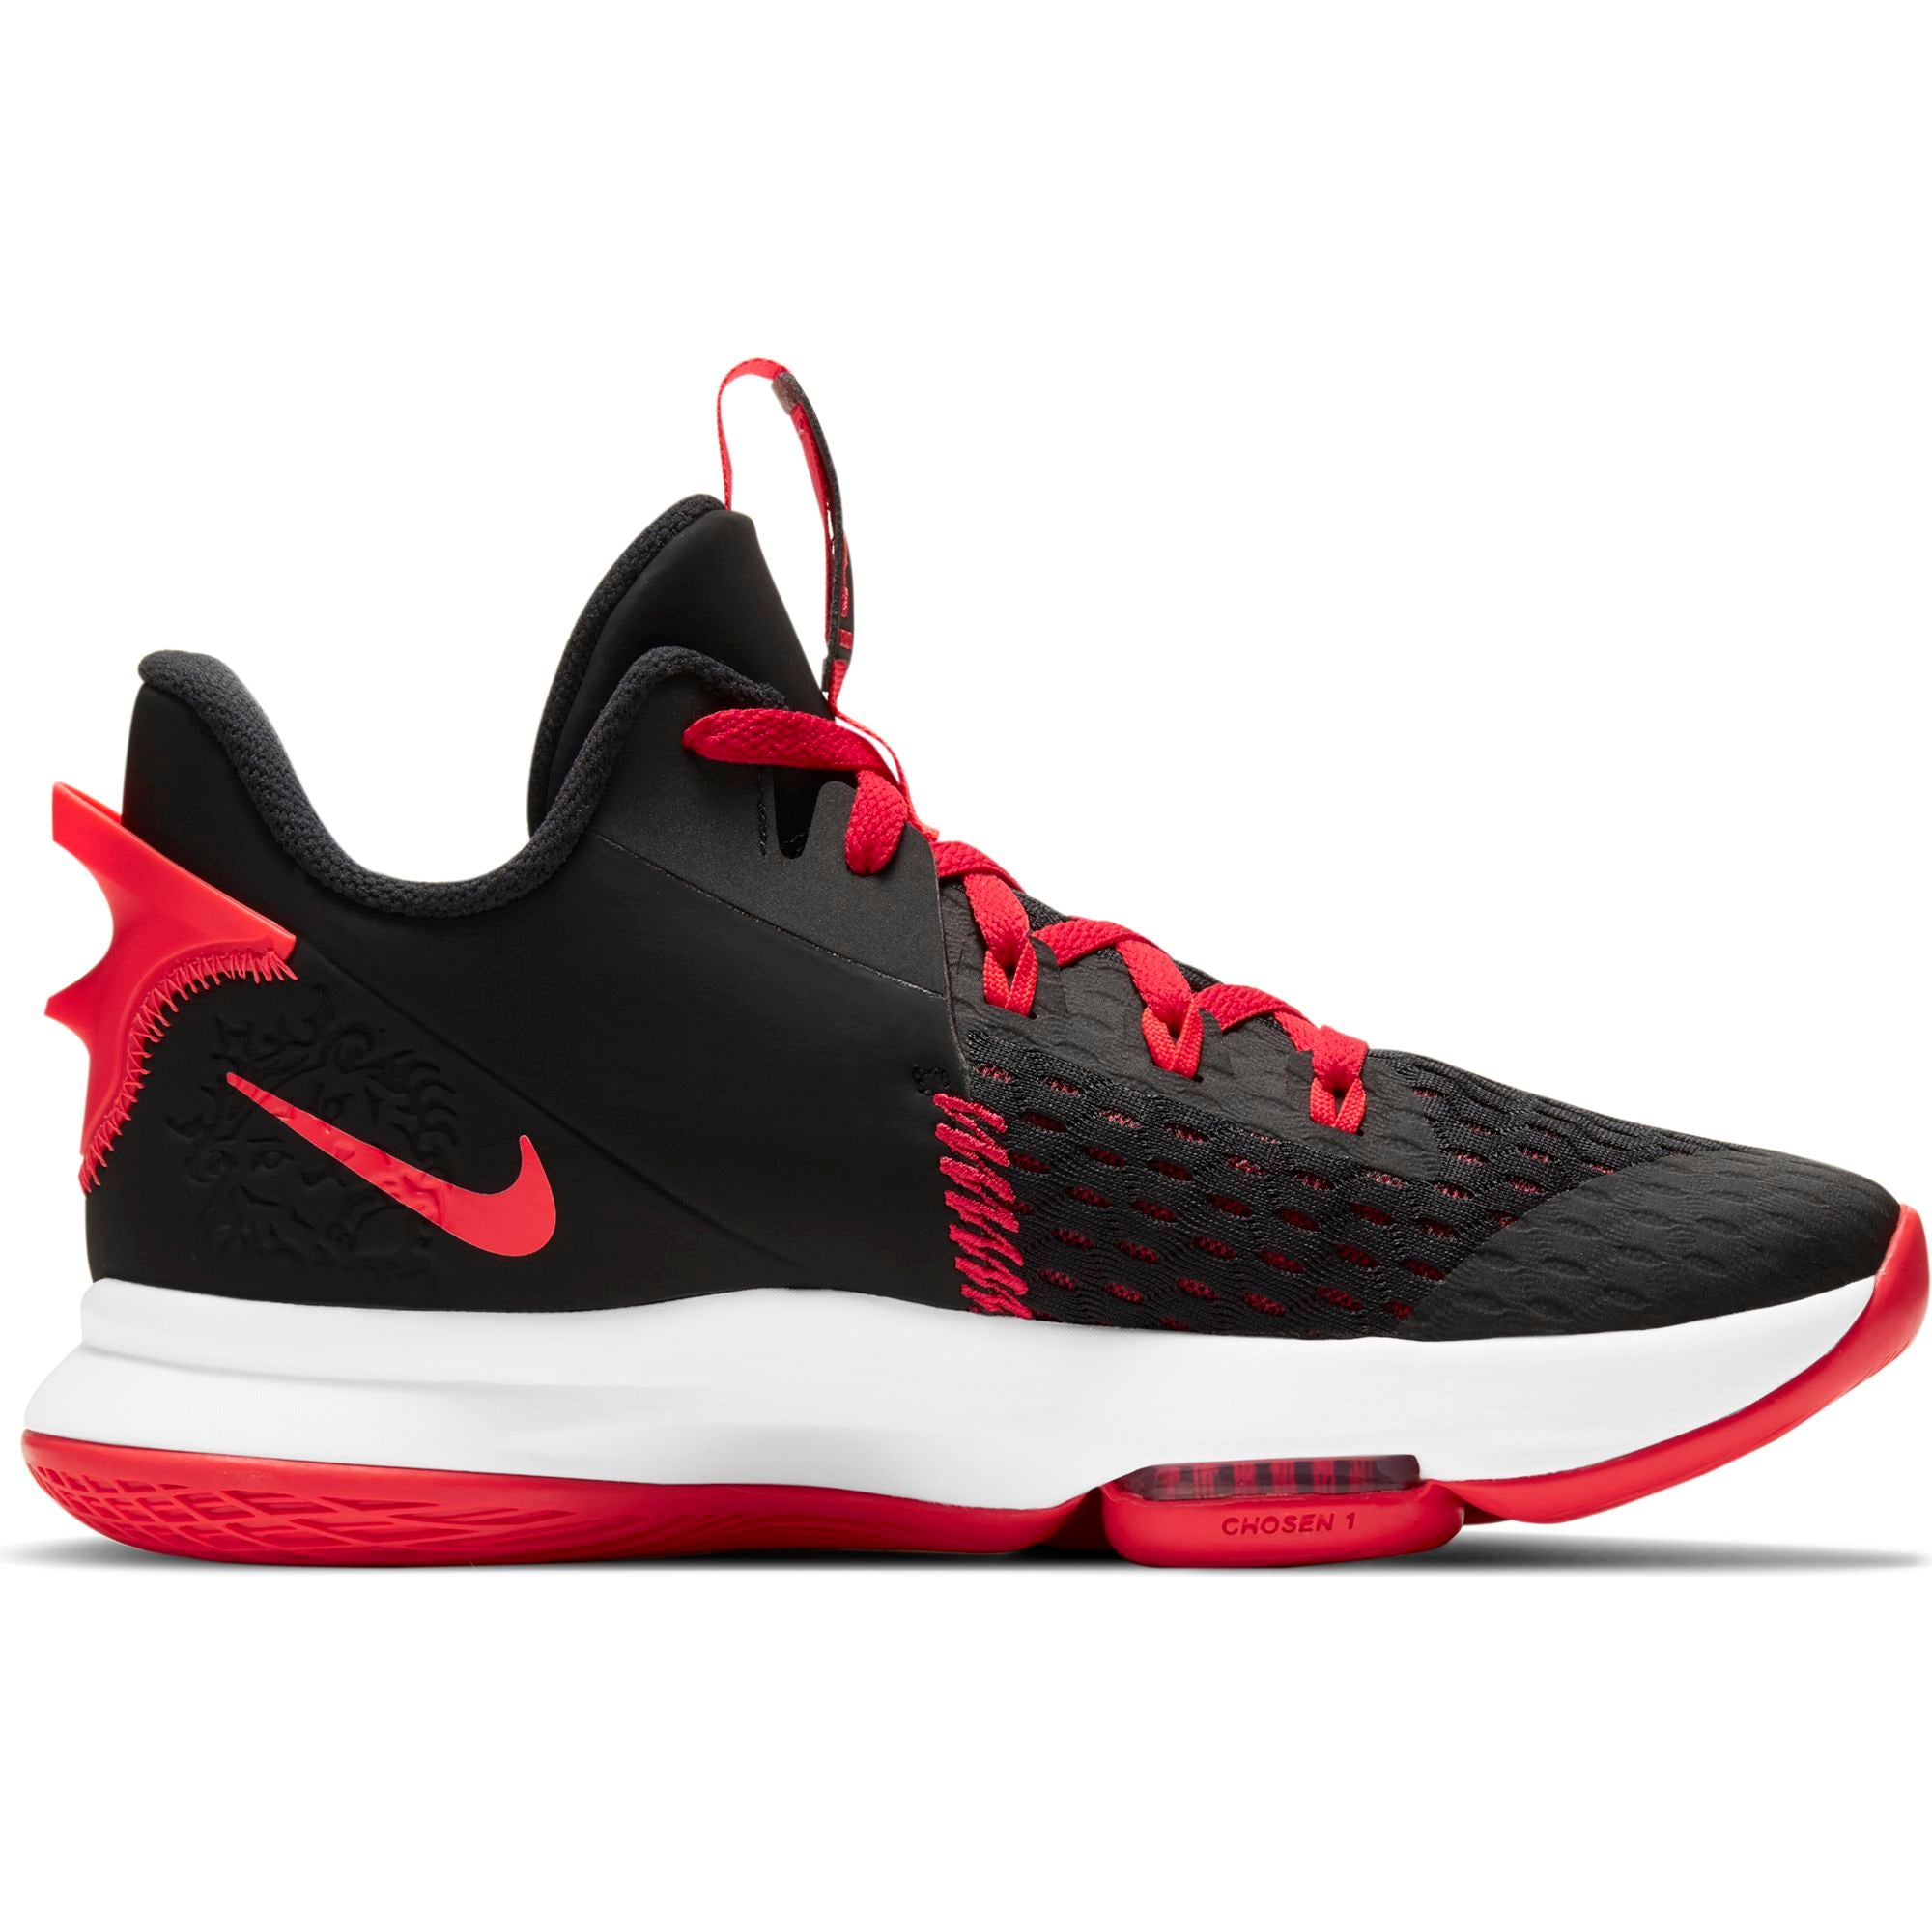 Nike Lebron Witness 5 Basketball Boot/Shoe - Black/Bright Crimson/University Red NK-CQ9380-005